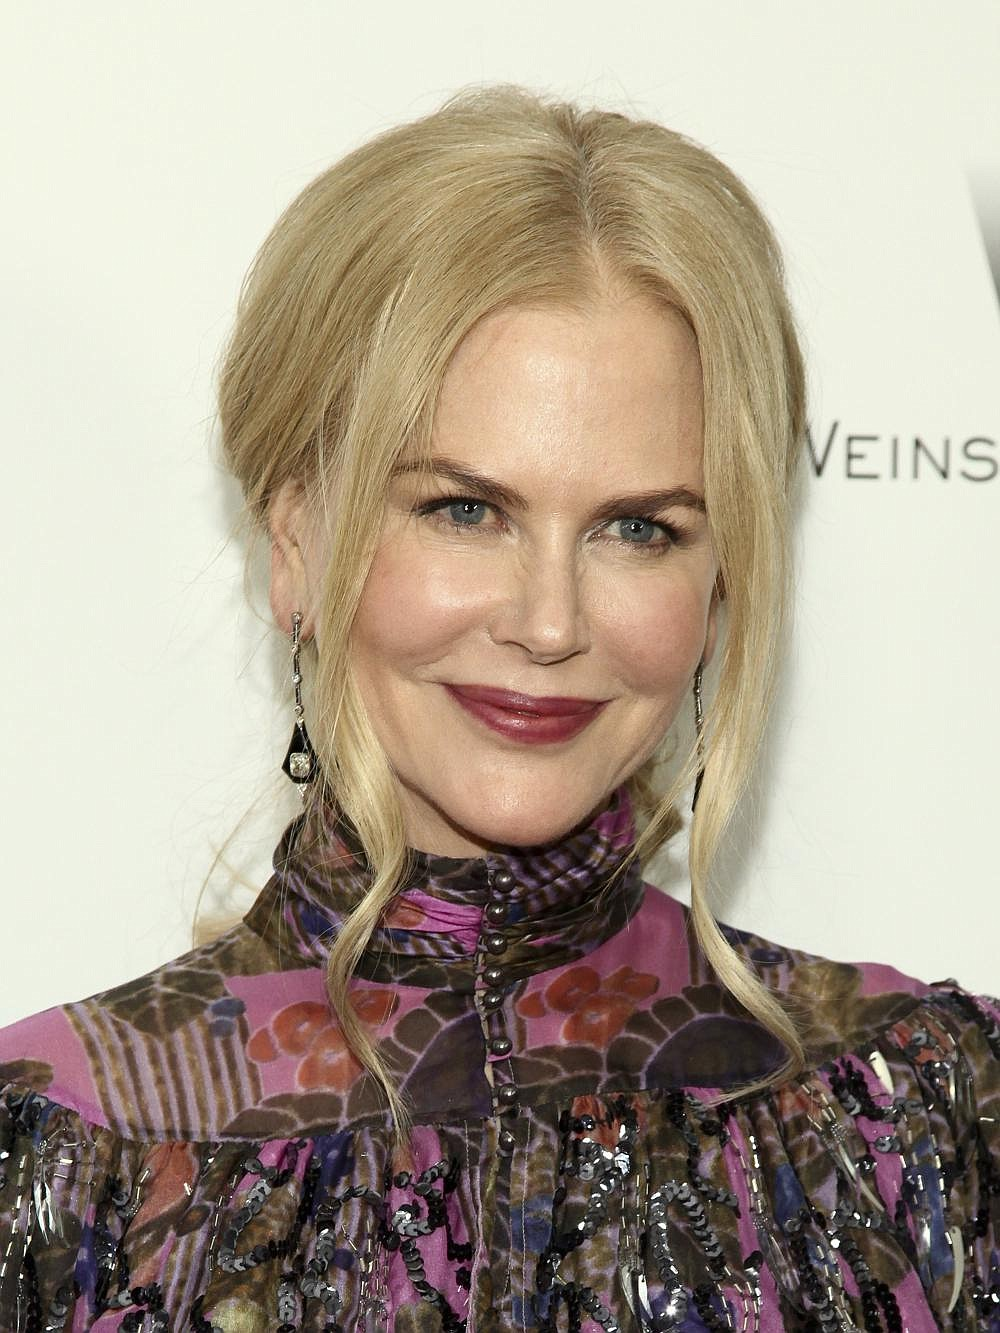 """Nicole Kidman attends the premiere of """"Lion"""" at the Museum of Modern Art on Wednesday, Nov. 16, 2016, in New York. (Photo by Andy Kropa/Invision/AP)"""